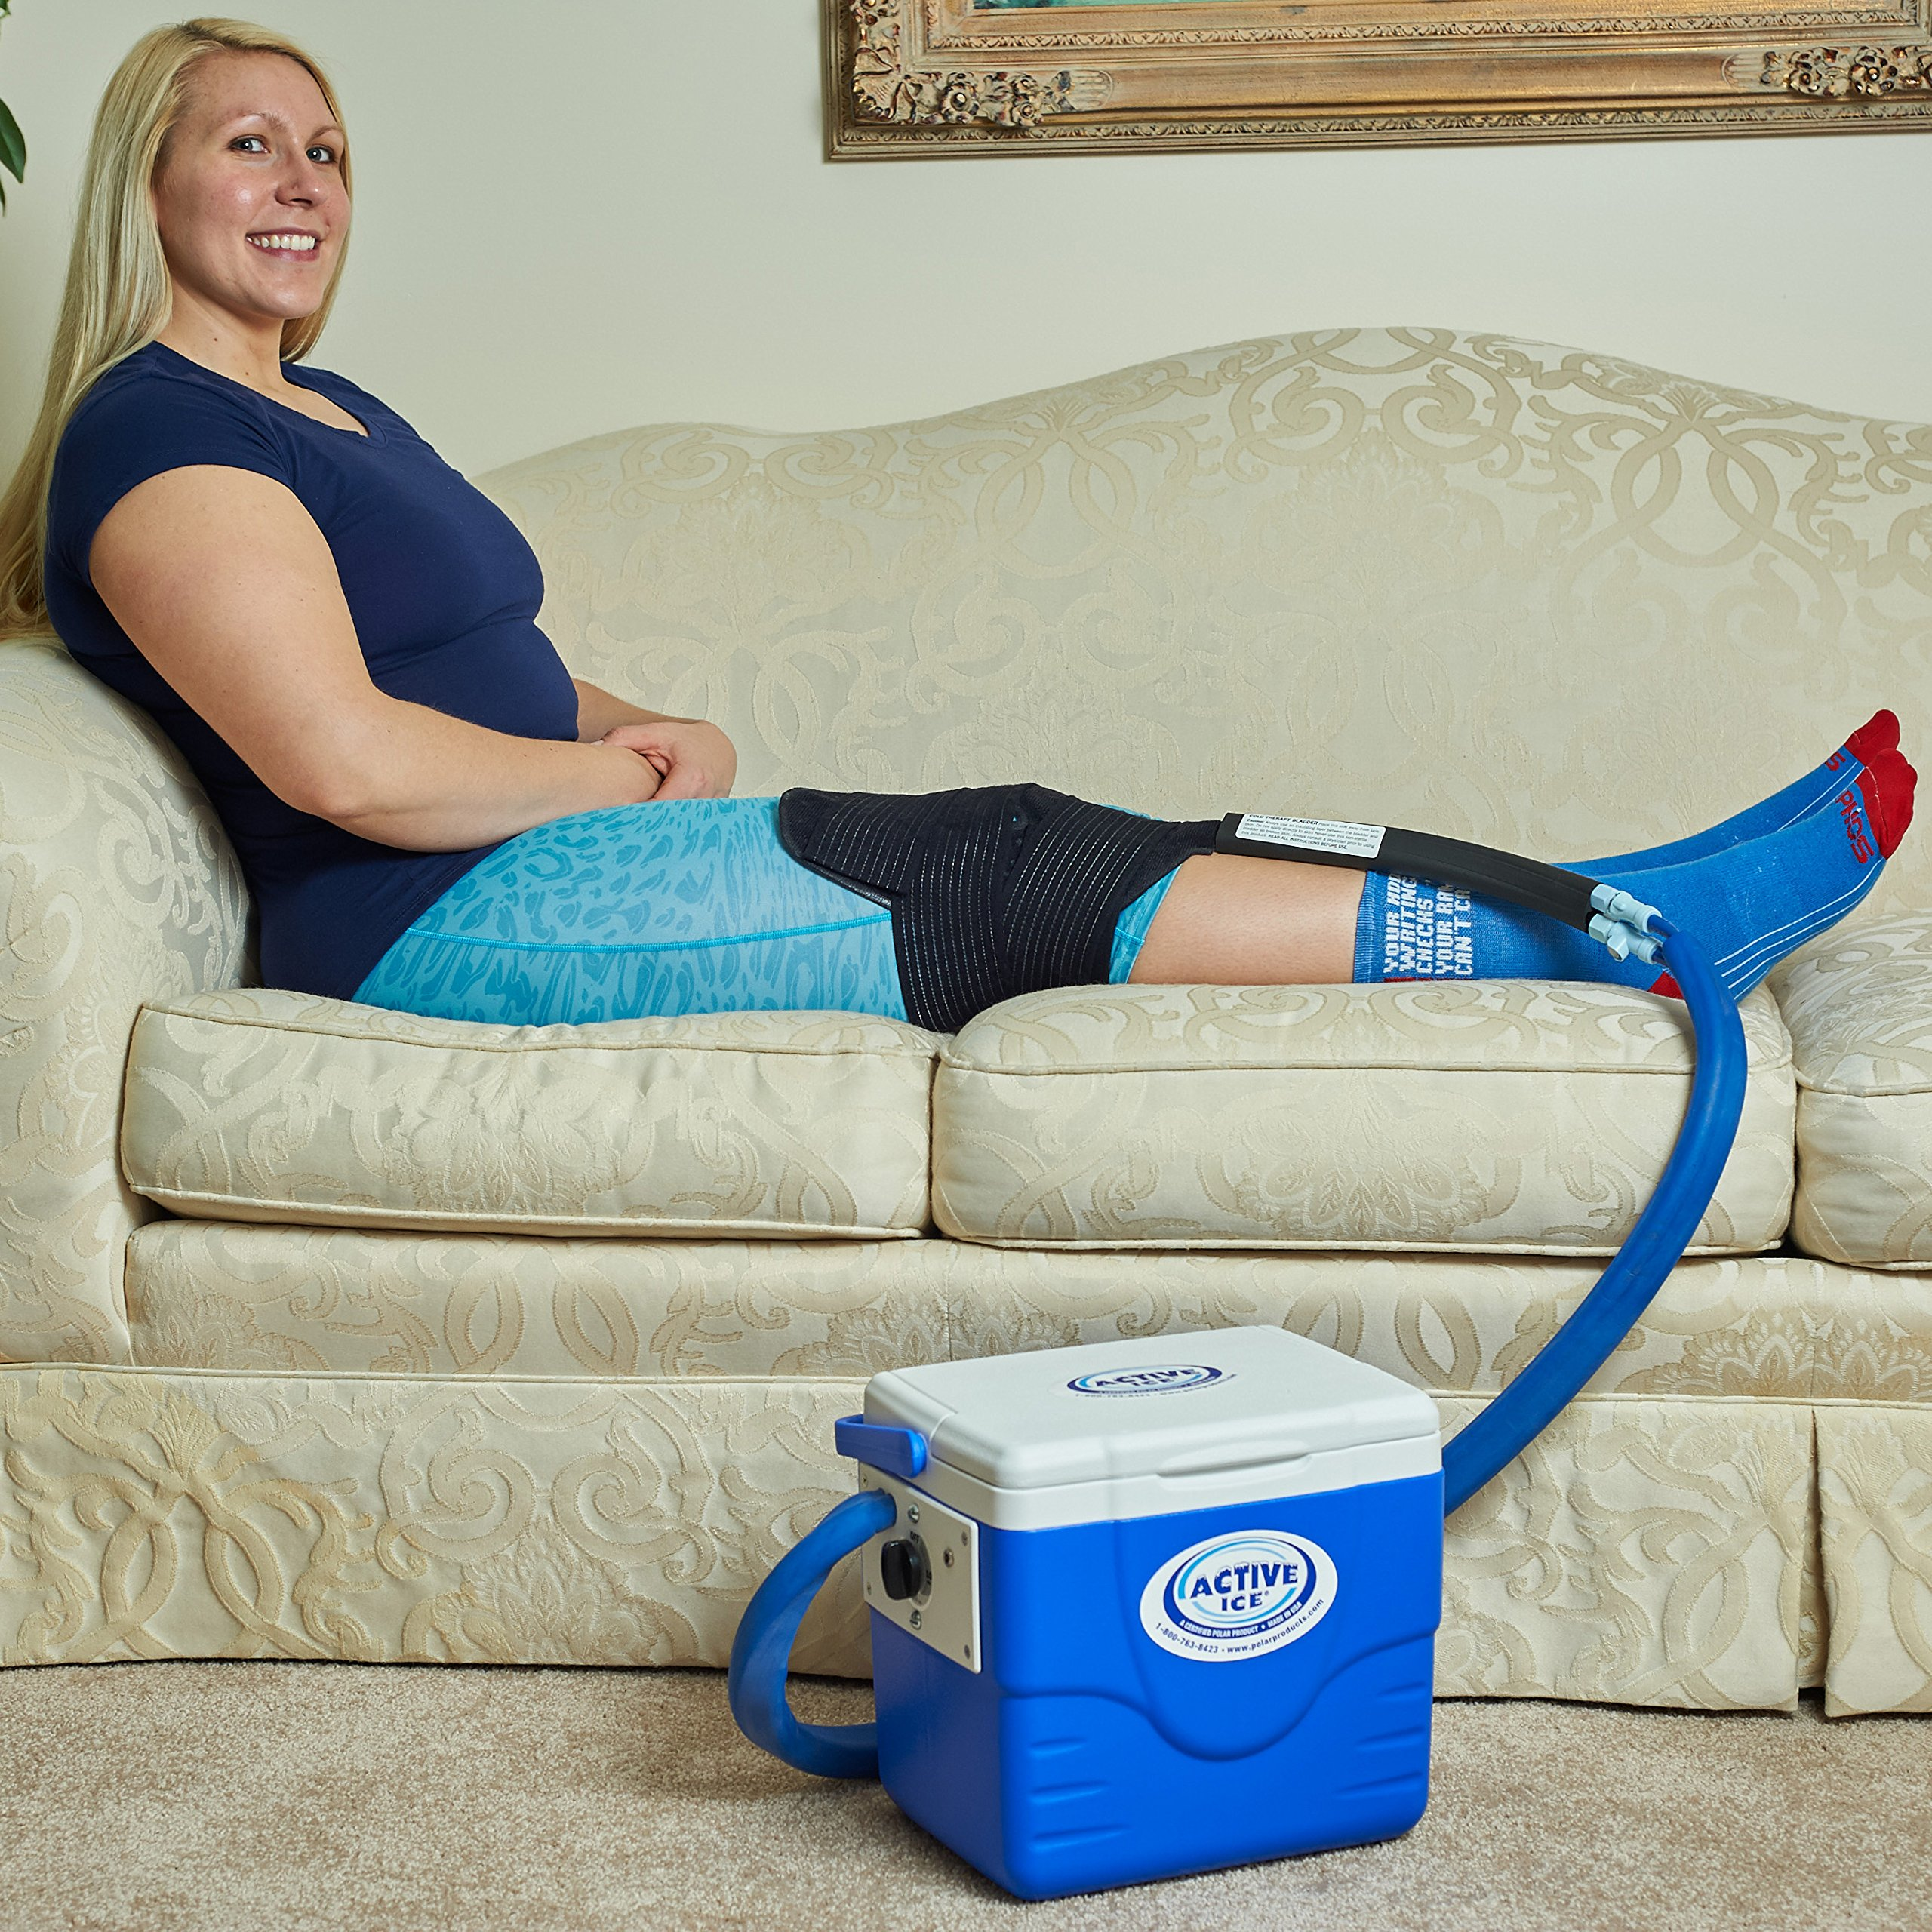 Polar Products Active Ice Therapy System 2.0 with Knee Compression Wrap